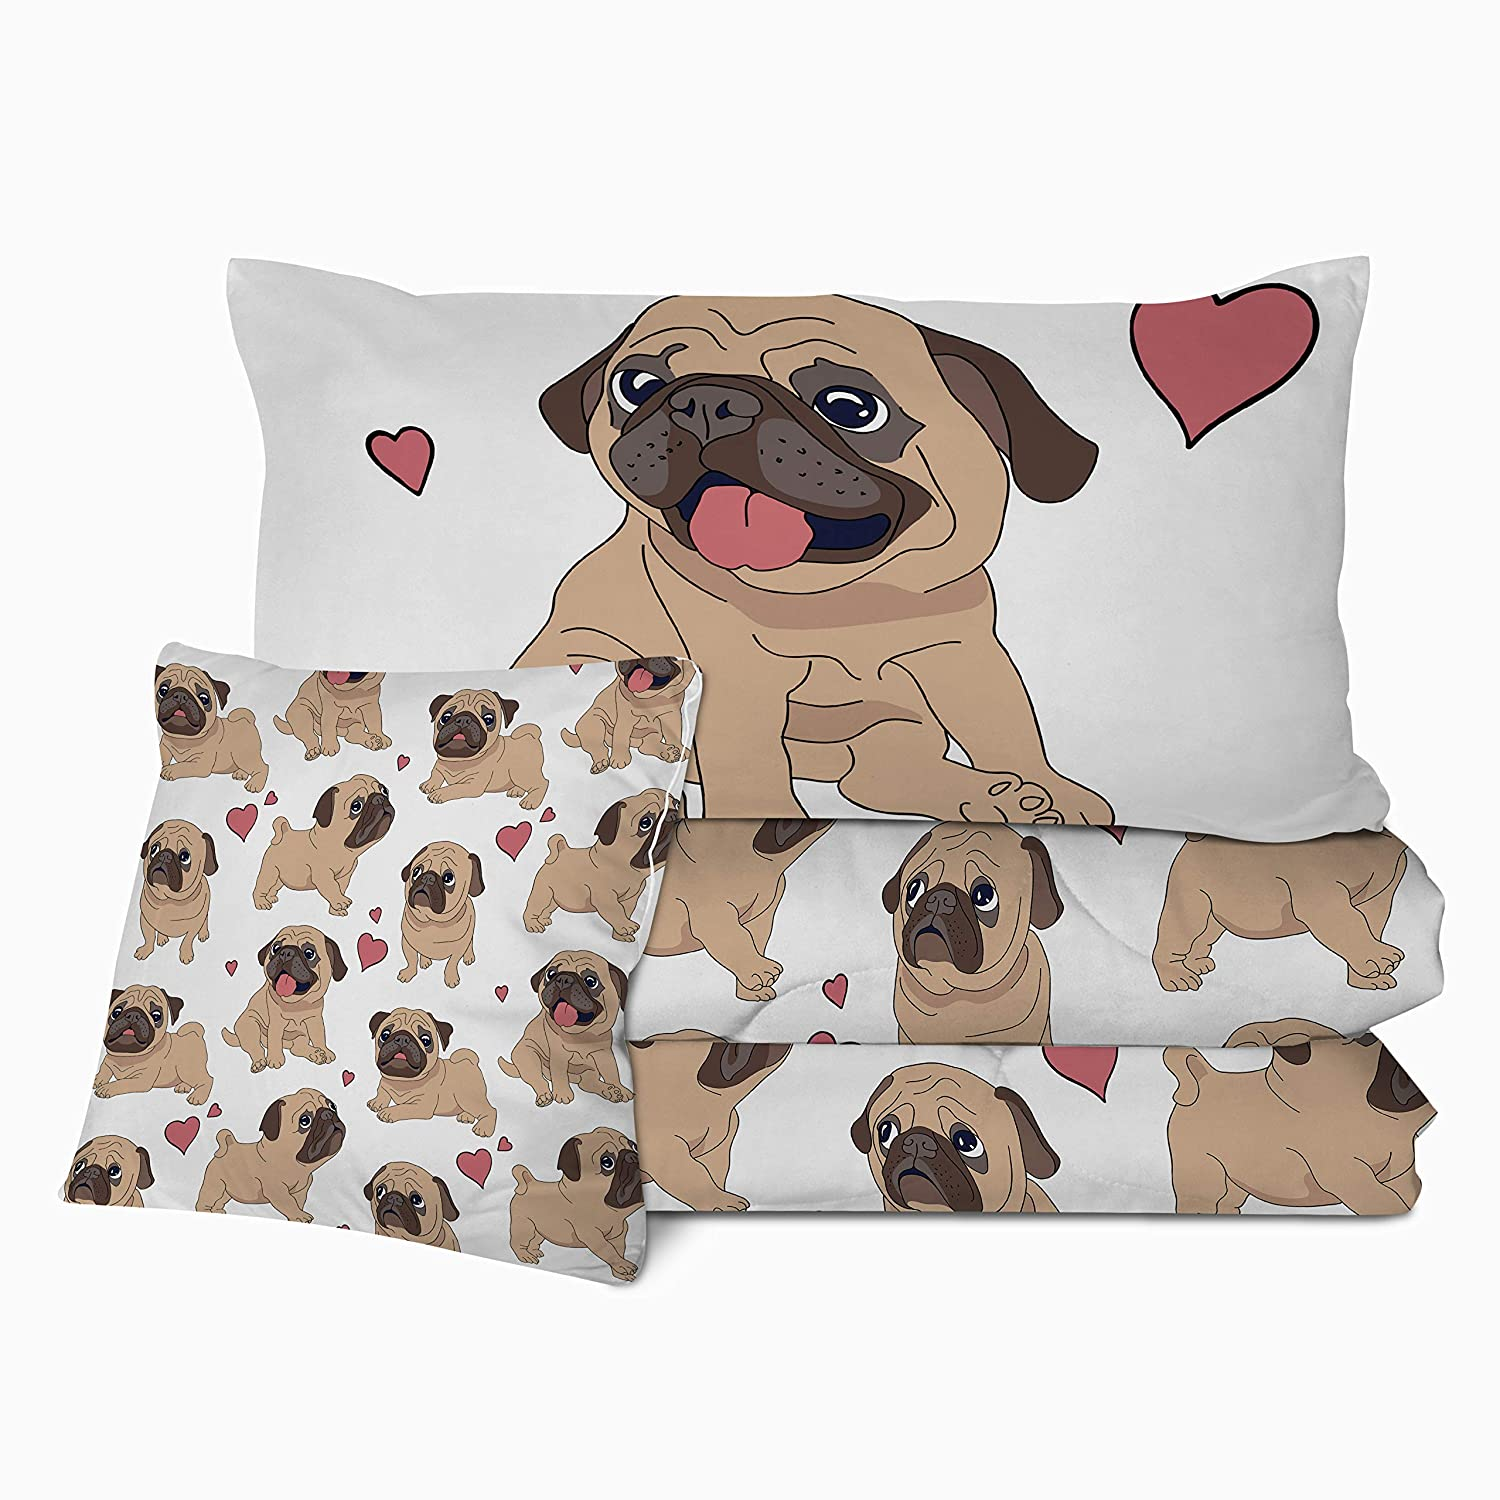 Sleepwish Puppy Pug Comforter Set 3D Dog Printed Full Size Comforter 4 Pieces Cute Pet Hearts Bedding Sets with with 2 Pillow Shams and 1 Cushion Cover Lightweight Super Soft and Fluffy